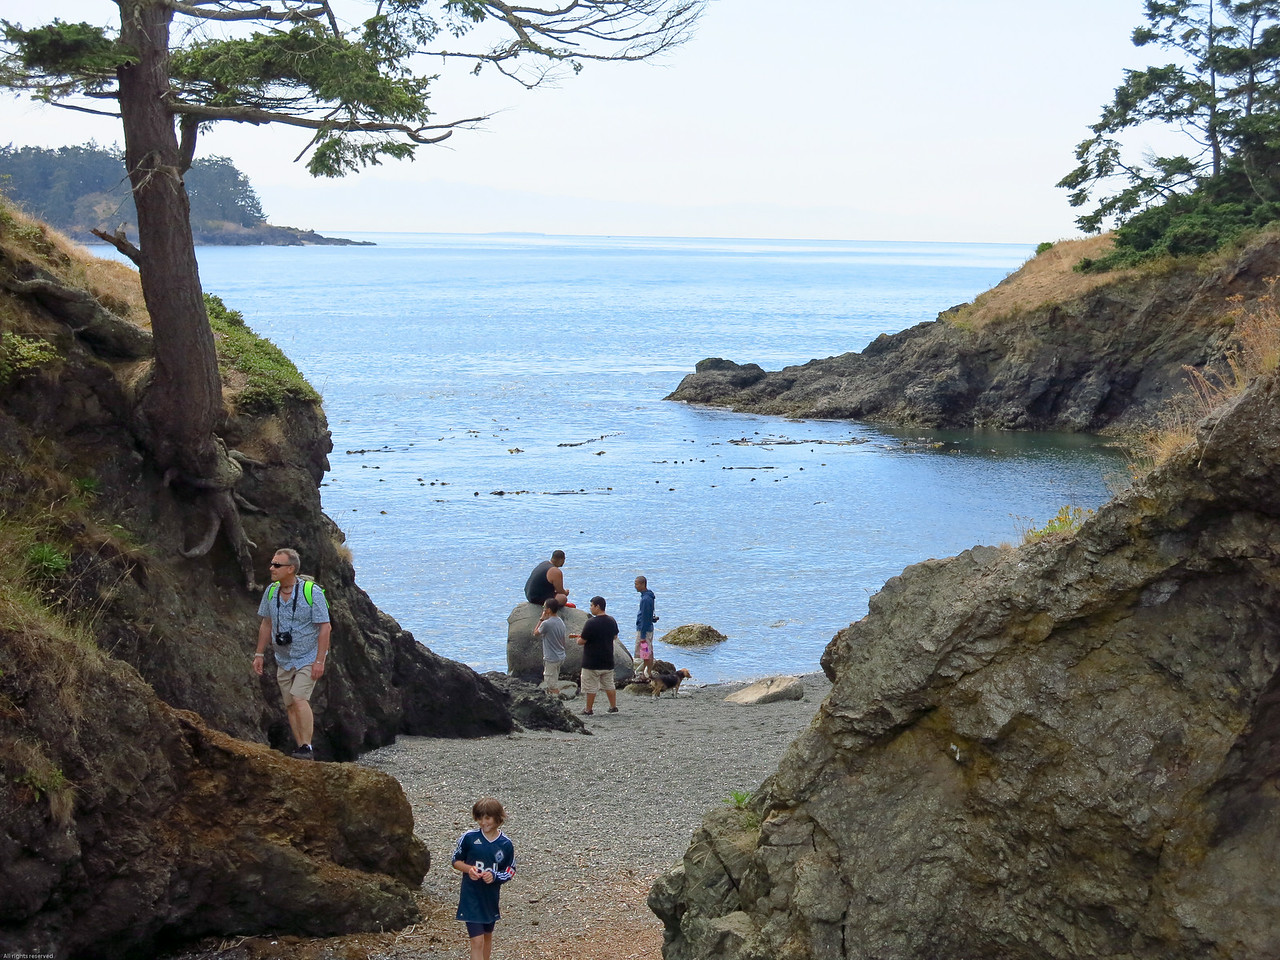 West entrance to Deception Pass